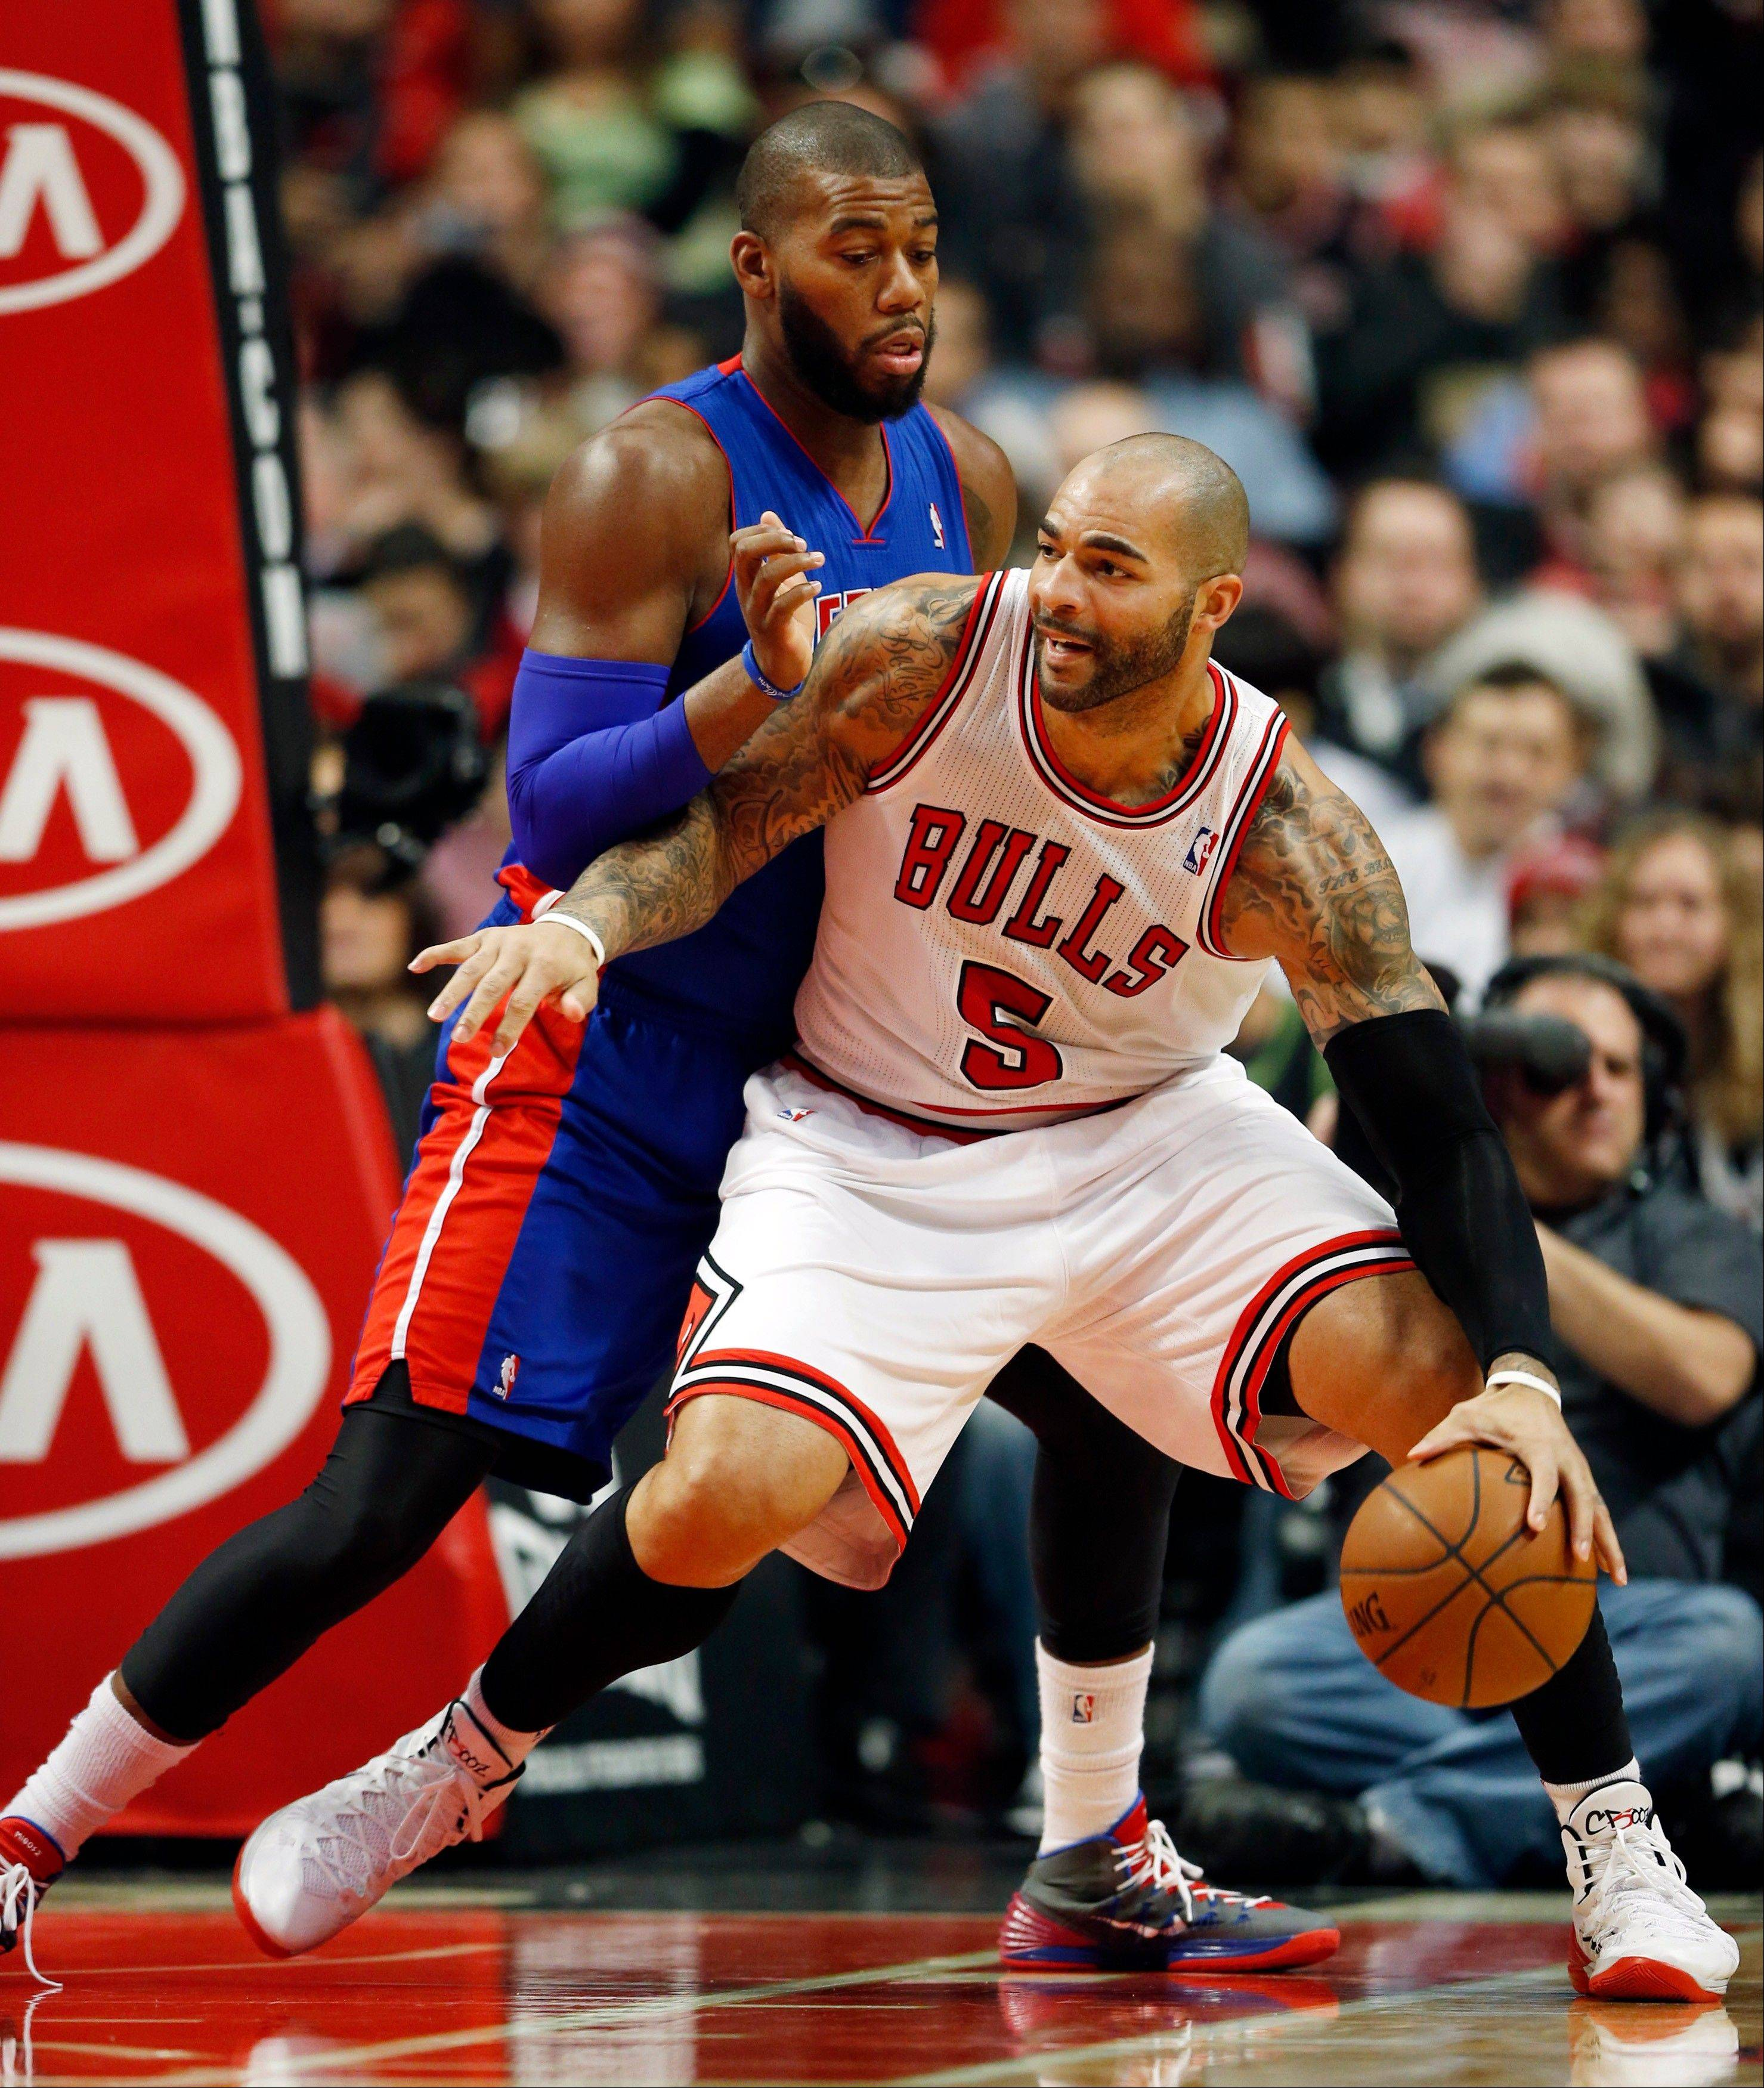 Bulls forward Carlos Boozer (5) looks for an opening against Detroit Pistons forward Greg Monroe during Saturday�s game. The Bulls lost to the Pistons, 92-75.